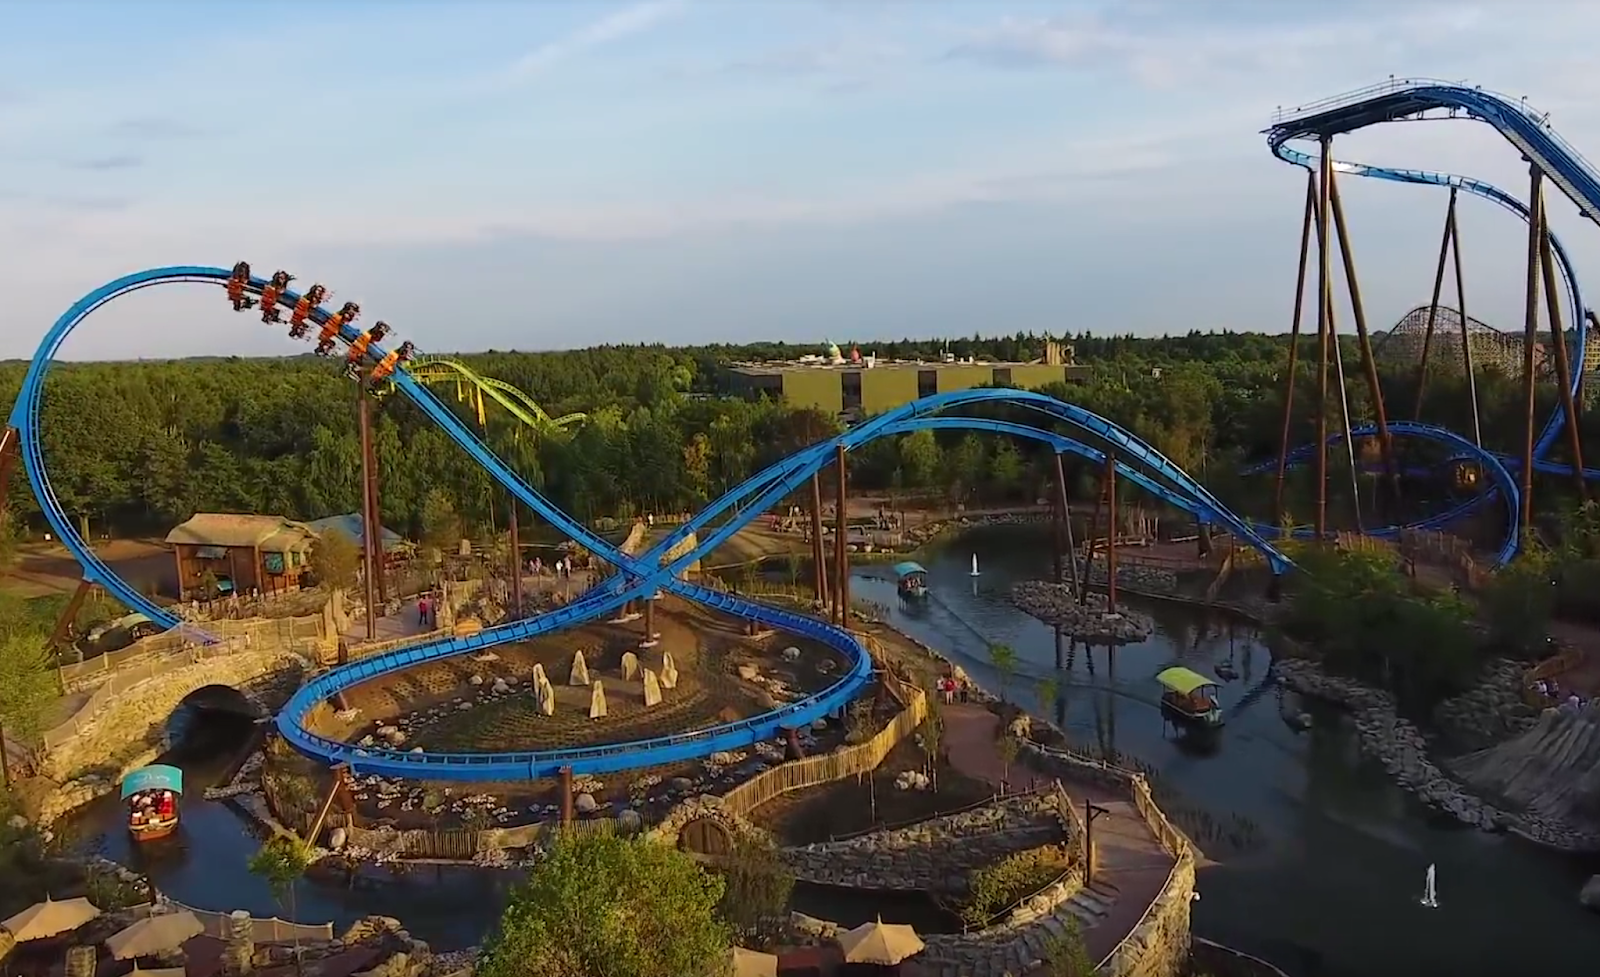 Newsplusnotes Toverlands New Bm Wing Coaster Fenix Opens This